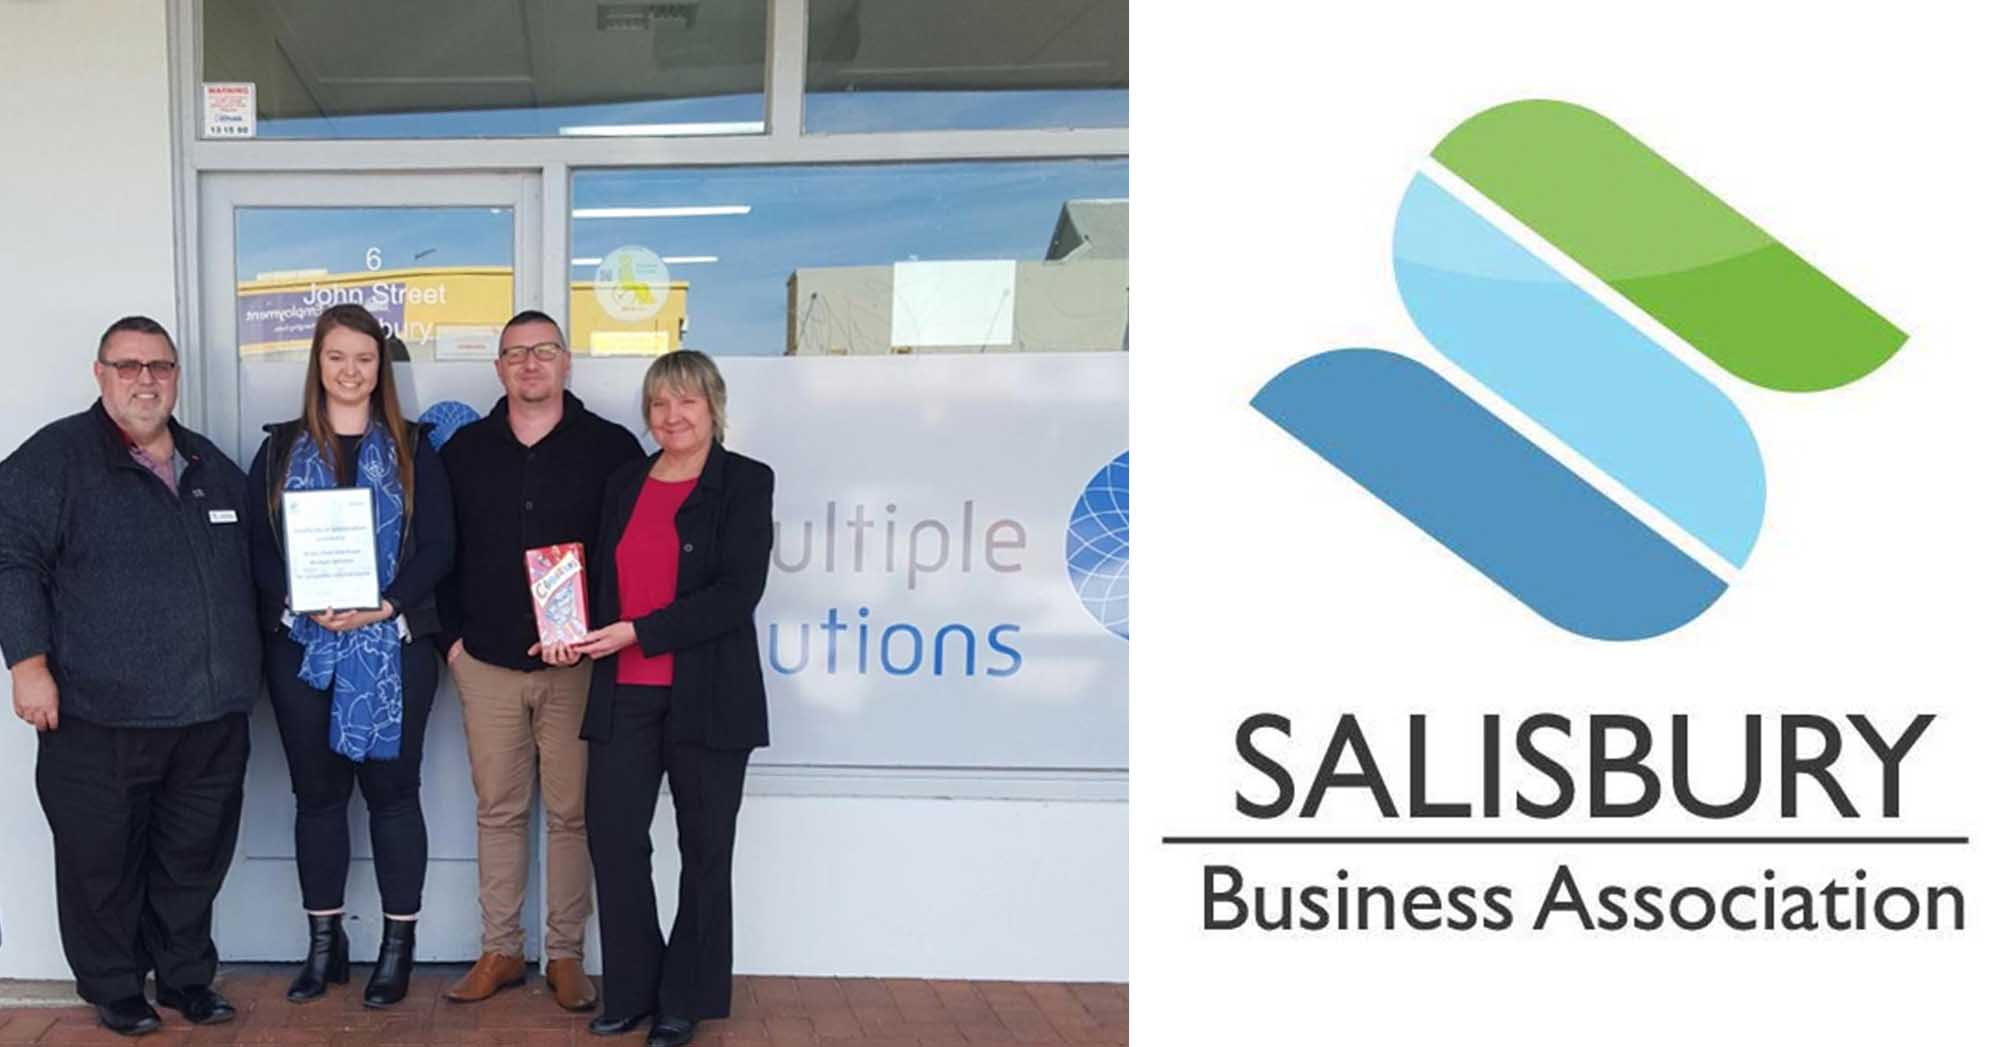 Photo of Sarah, Adam and Linda receiving certificate from Salisbury Business Trades Association